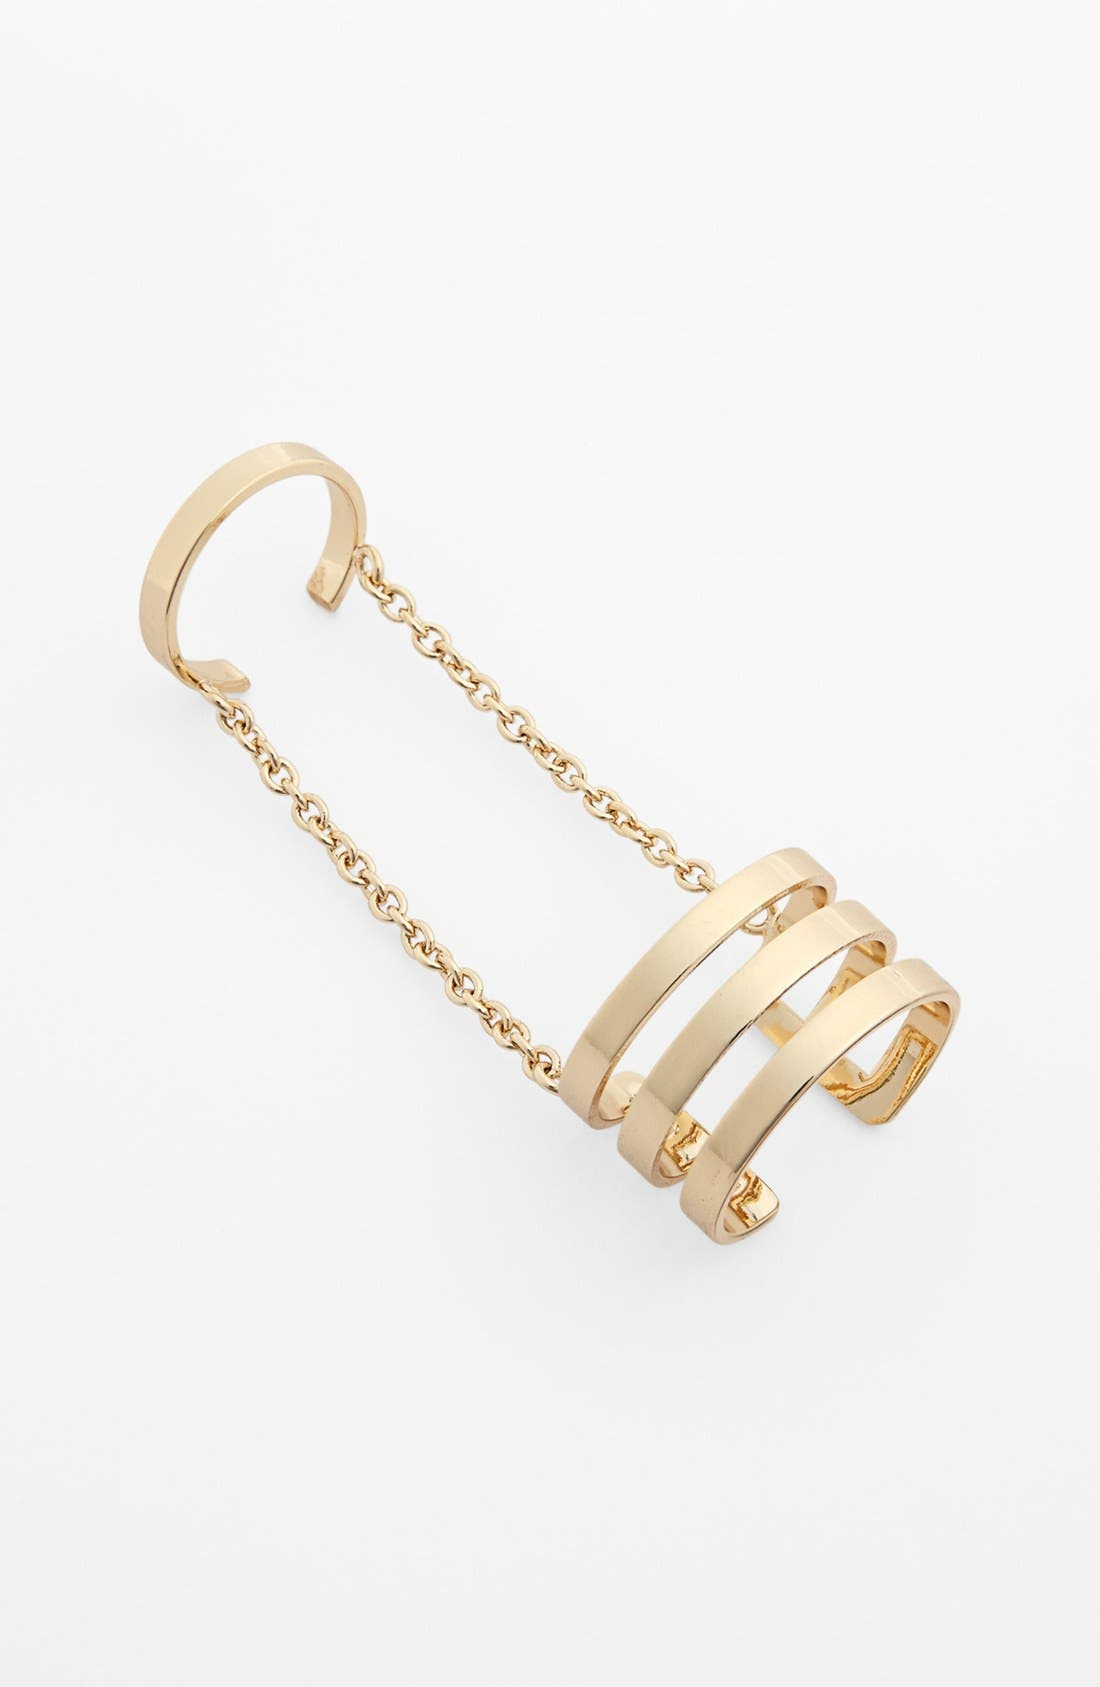 Alternate Image 1 Selected - Metal Haven by KENDALL + KYLIE 'Cage' Ring (Juniors) (Nordstrom Exclusive)